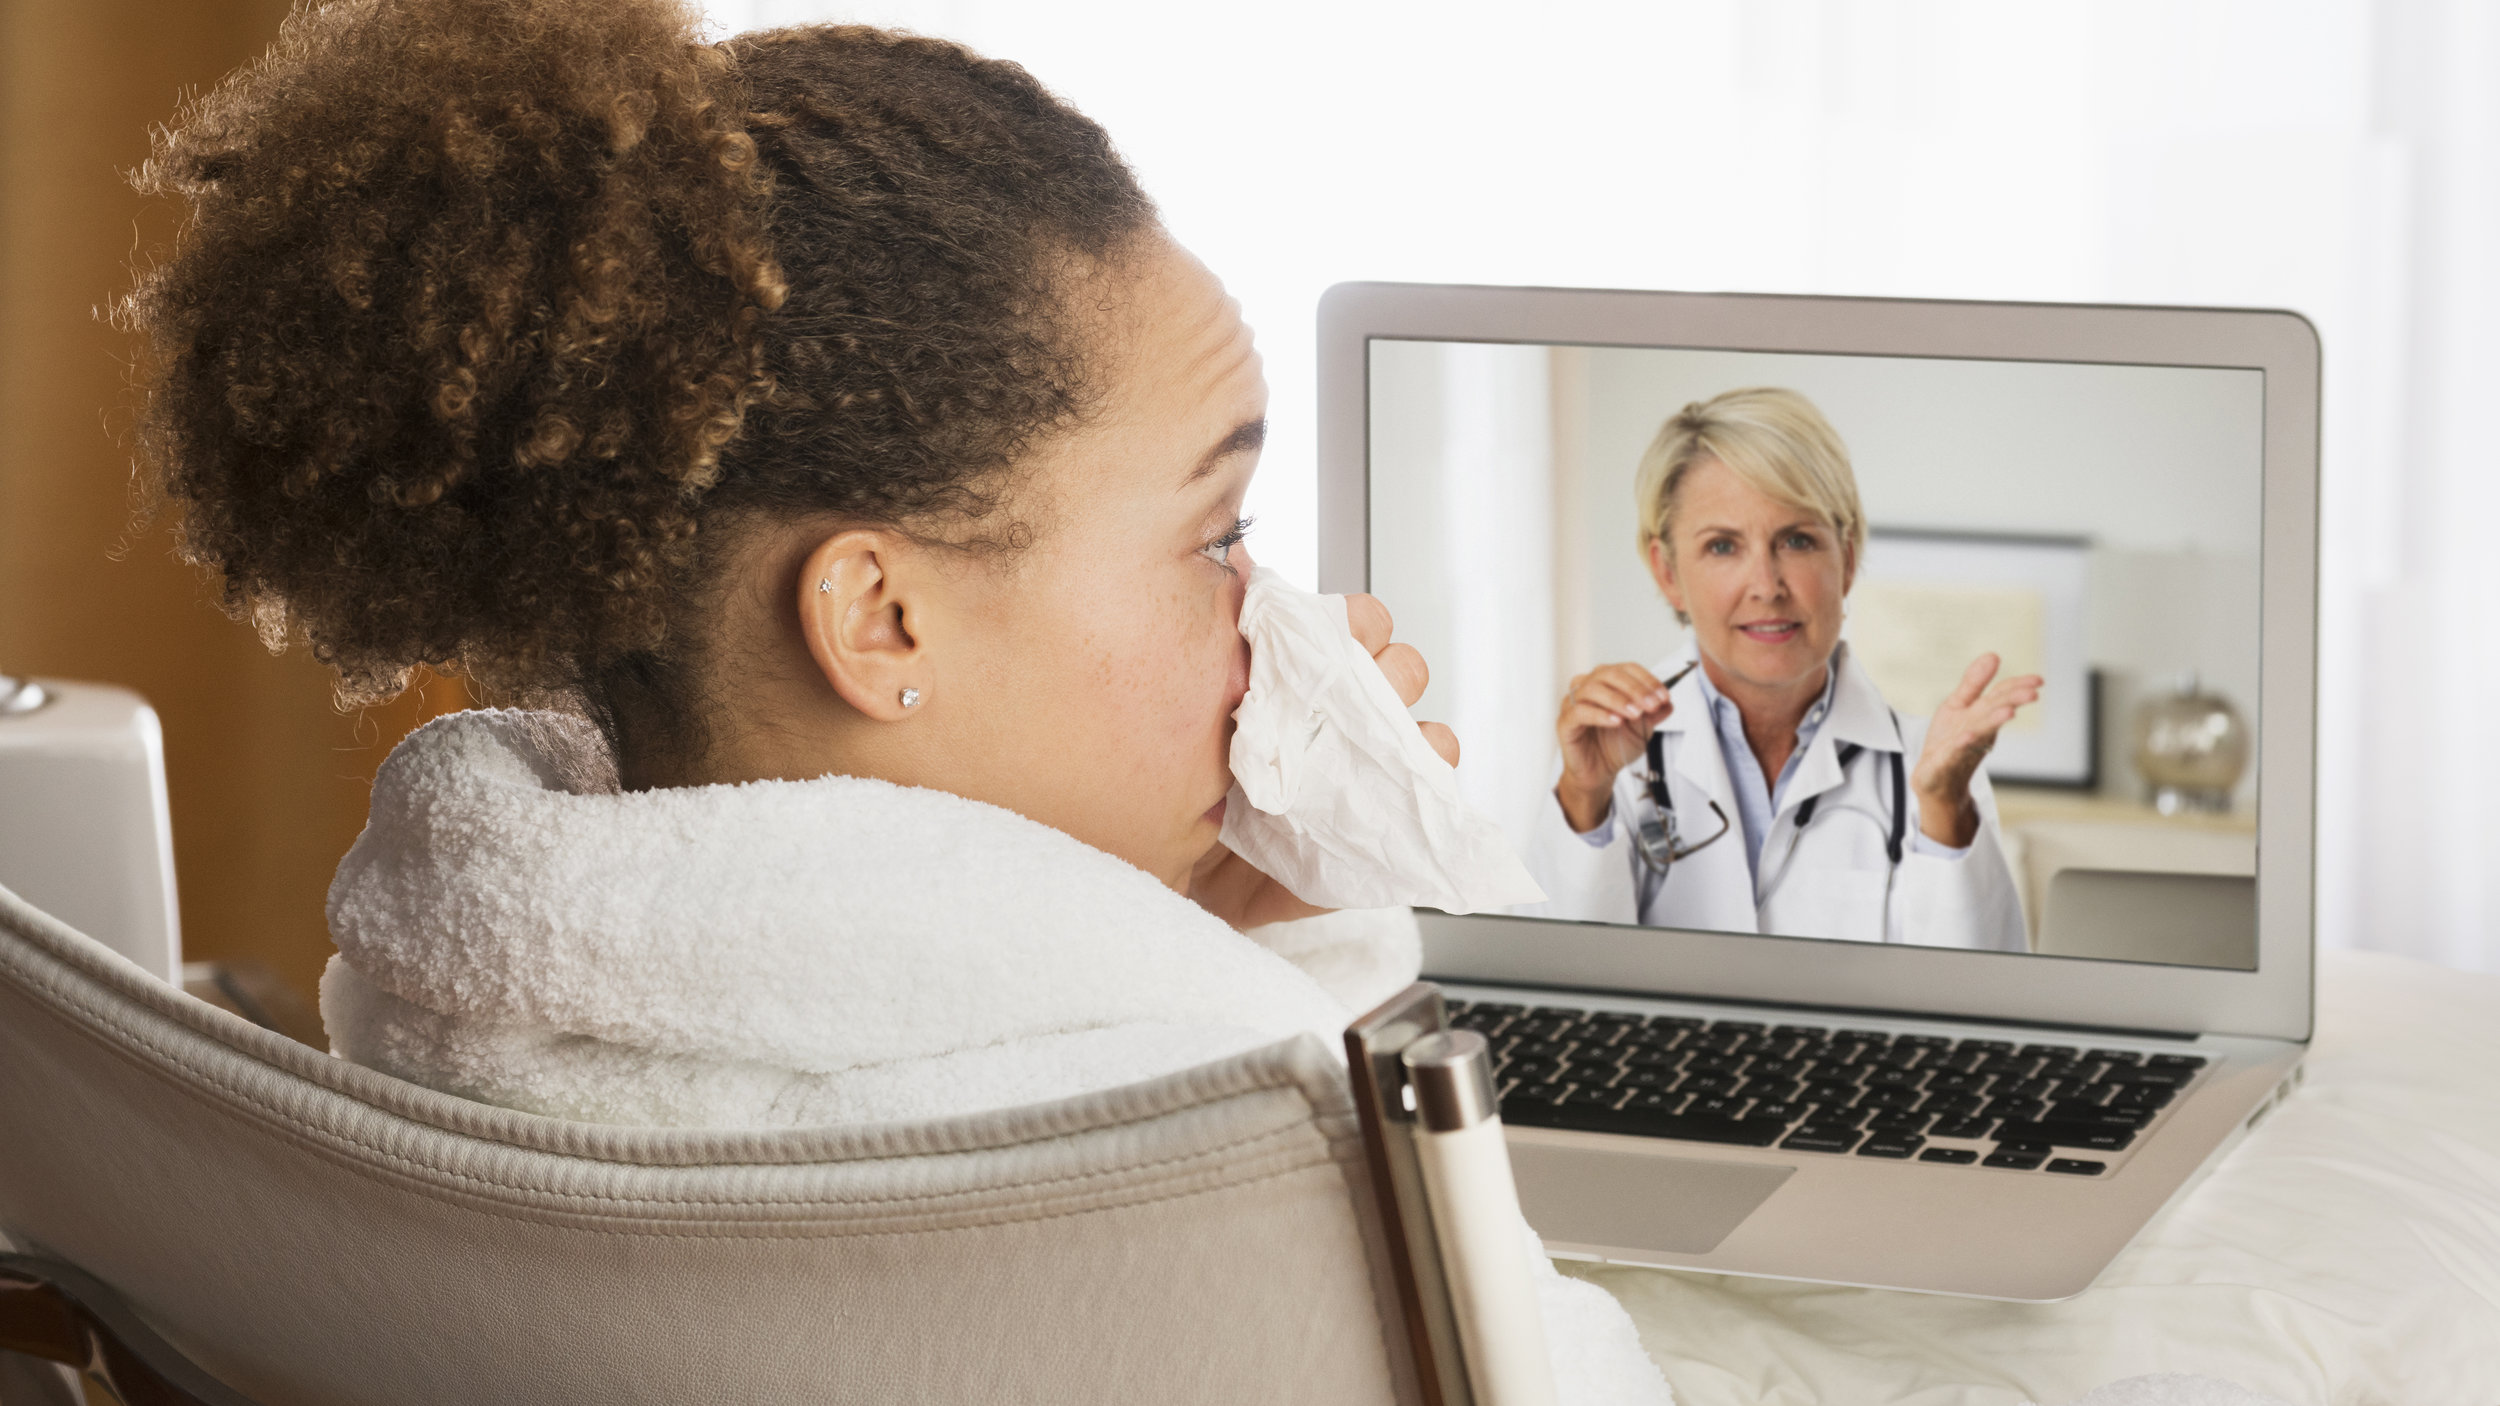 GettyImages-722208793 sick telehealth visit.jpg